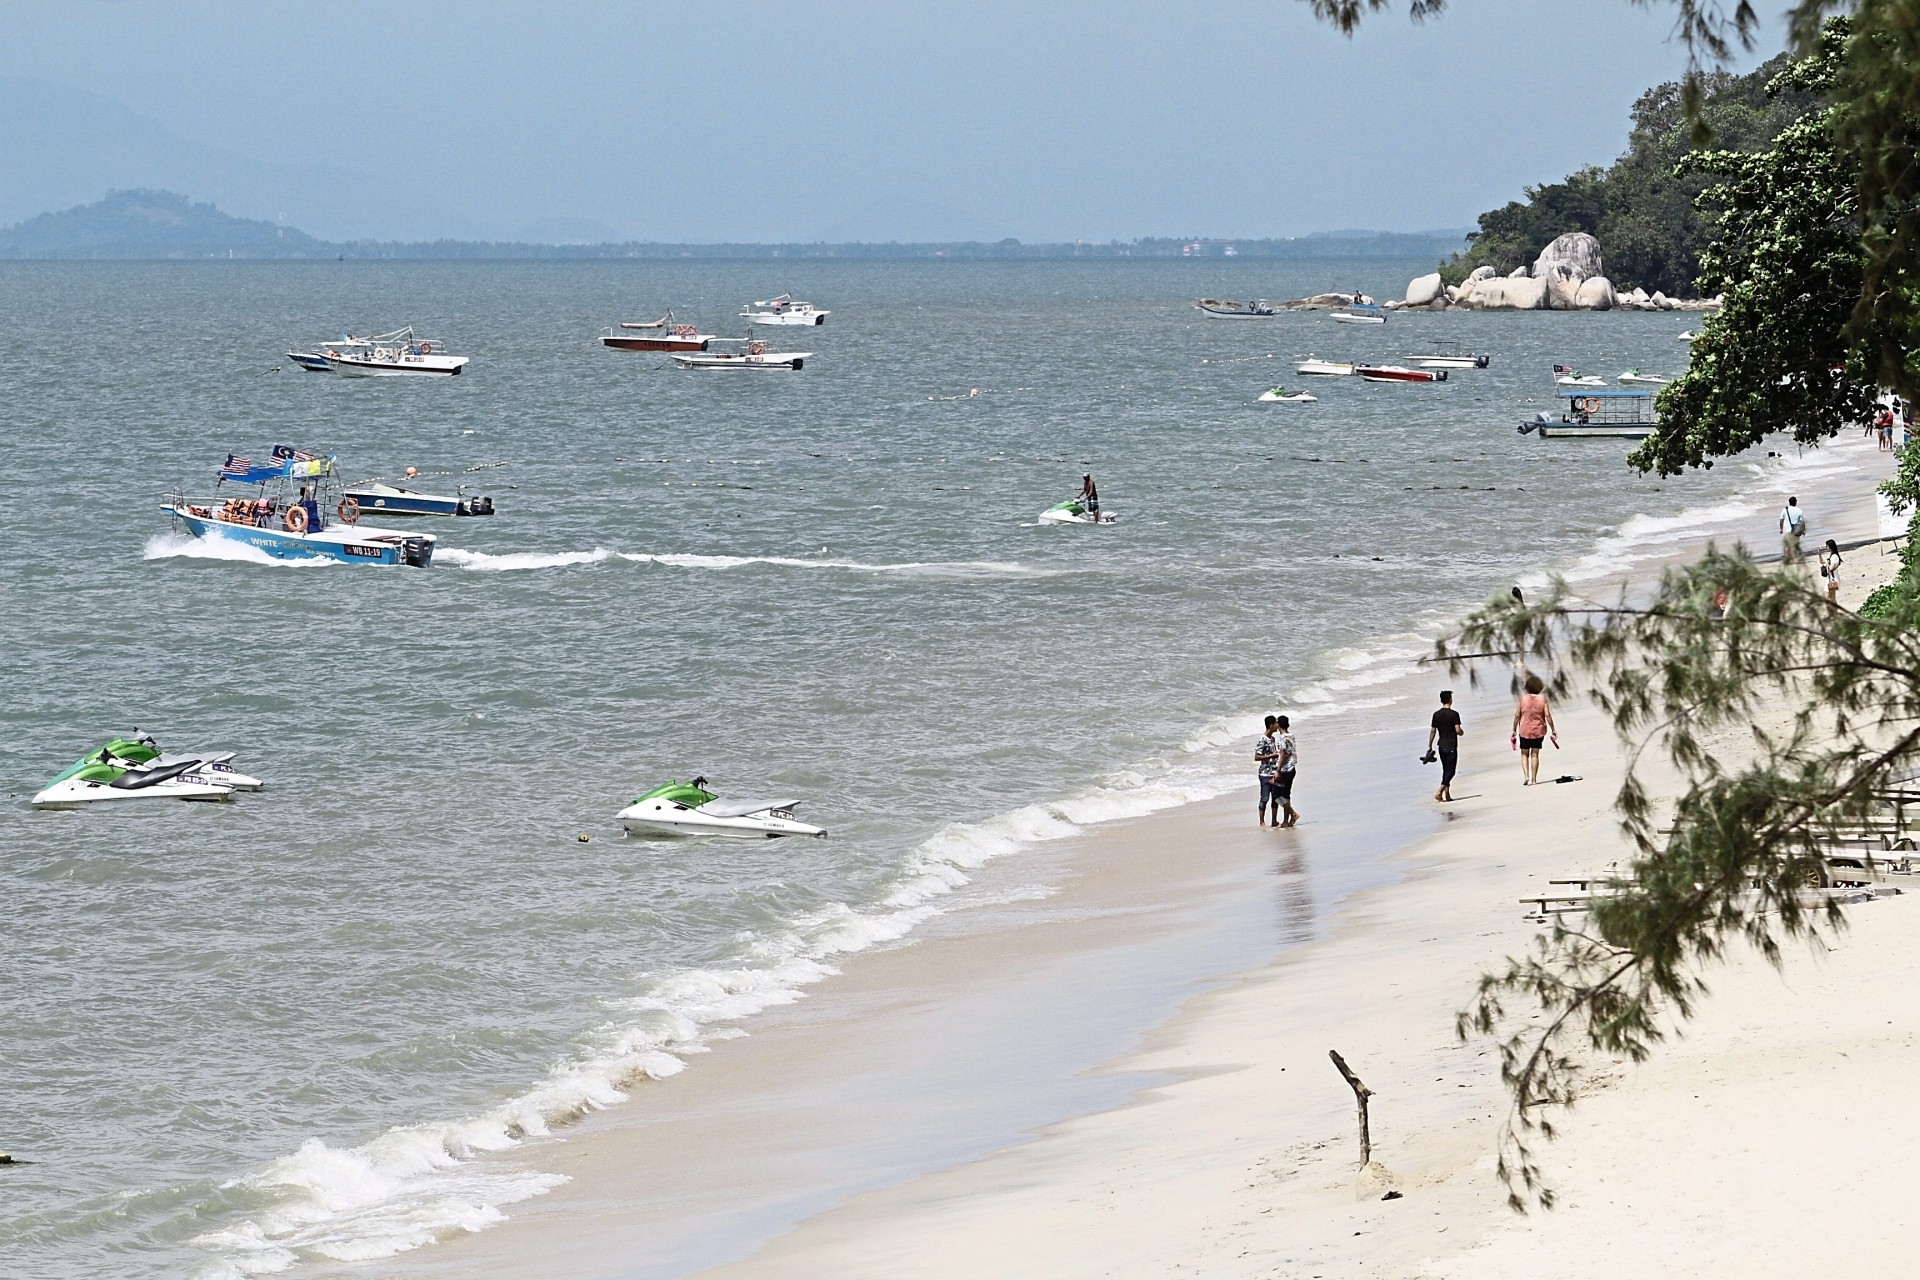 A general view of beachgoers at Batu Ferringhi. Under the company's proposal, the reclaimed site will be turned into an international resort with hotels, commercial areas and serviced apartments.